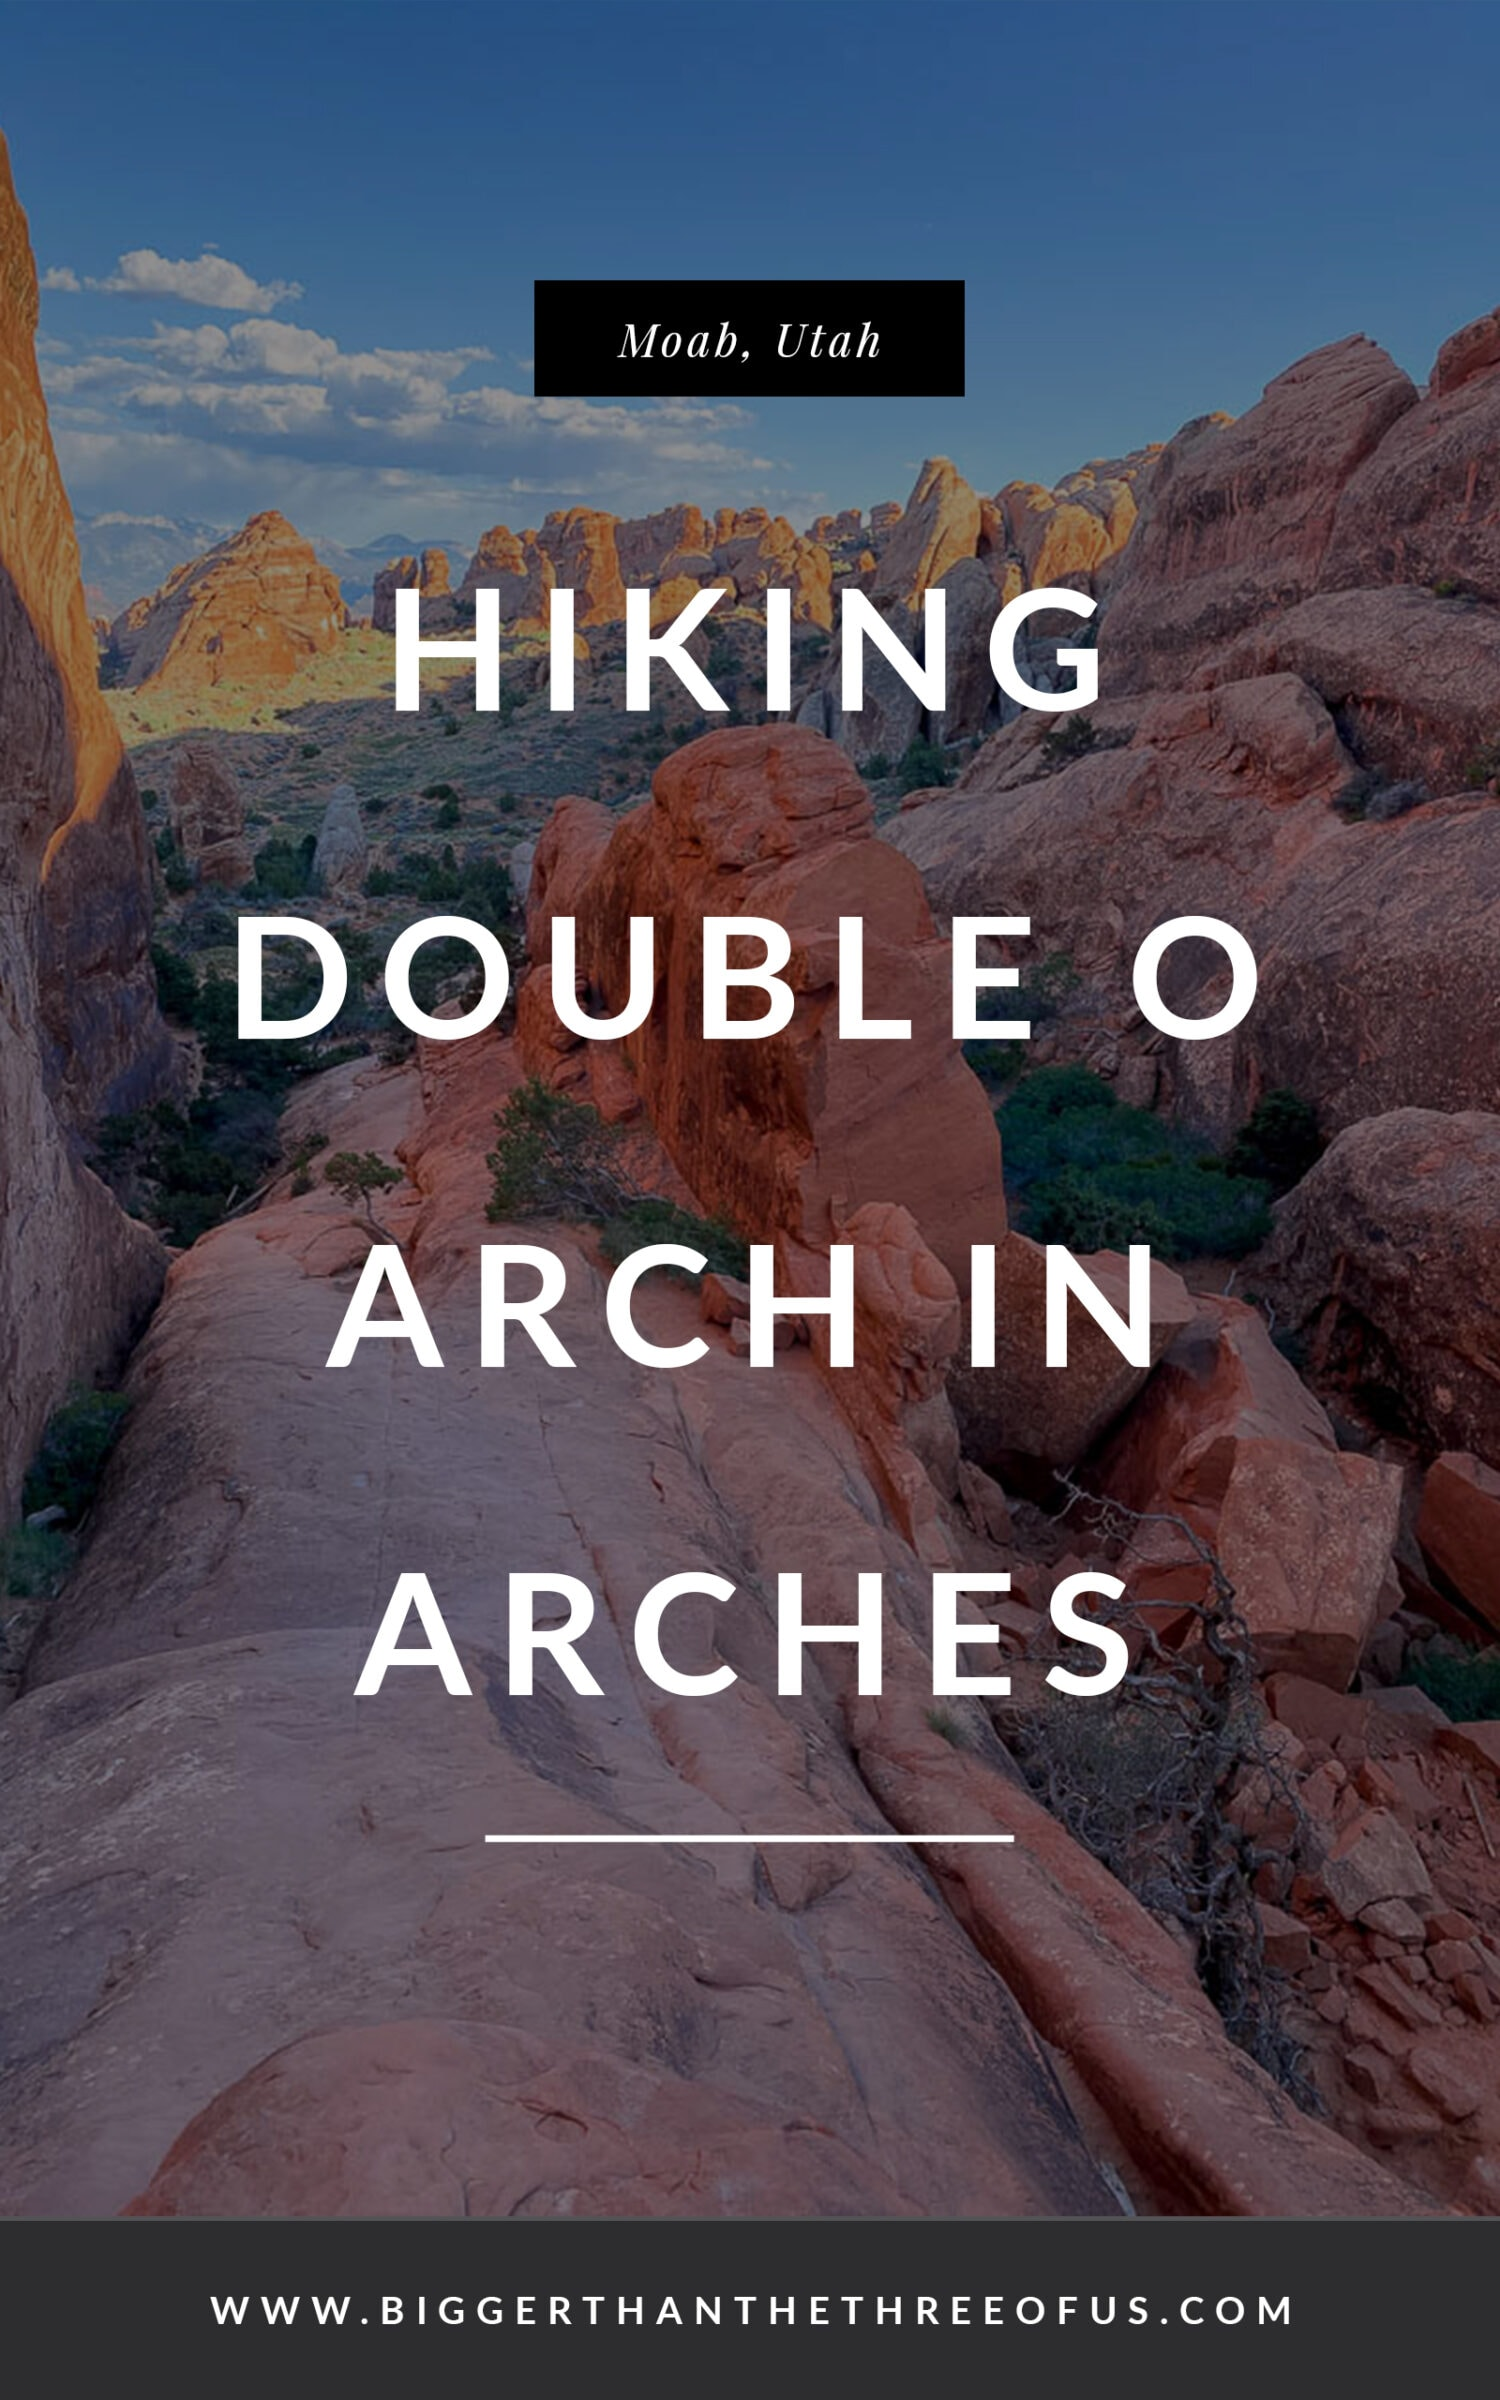 Hiking to Double O Arch in Arches National Park